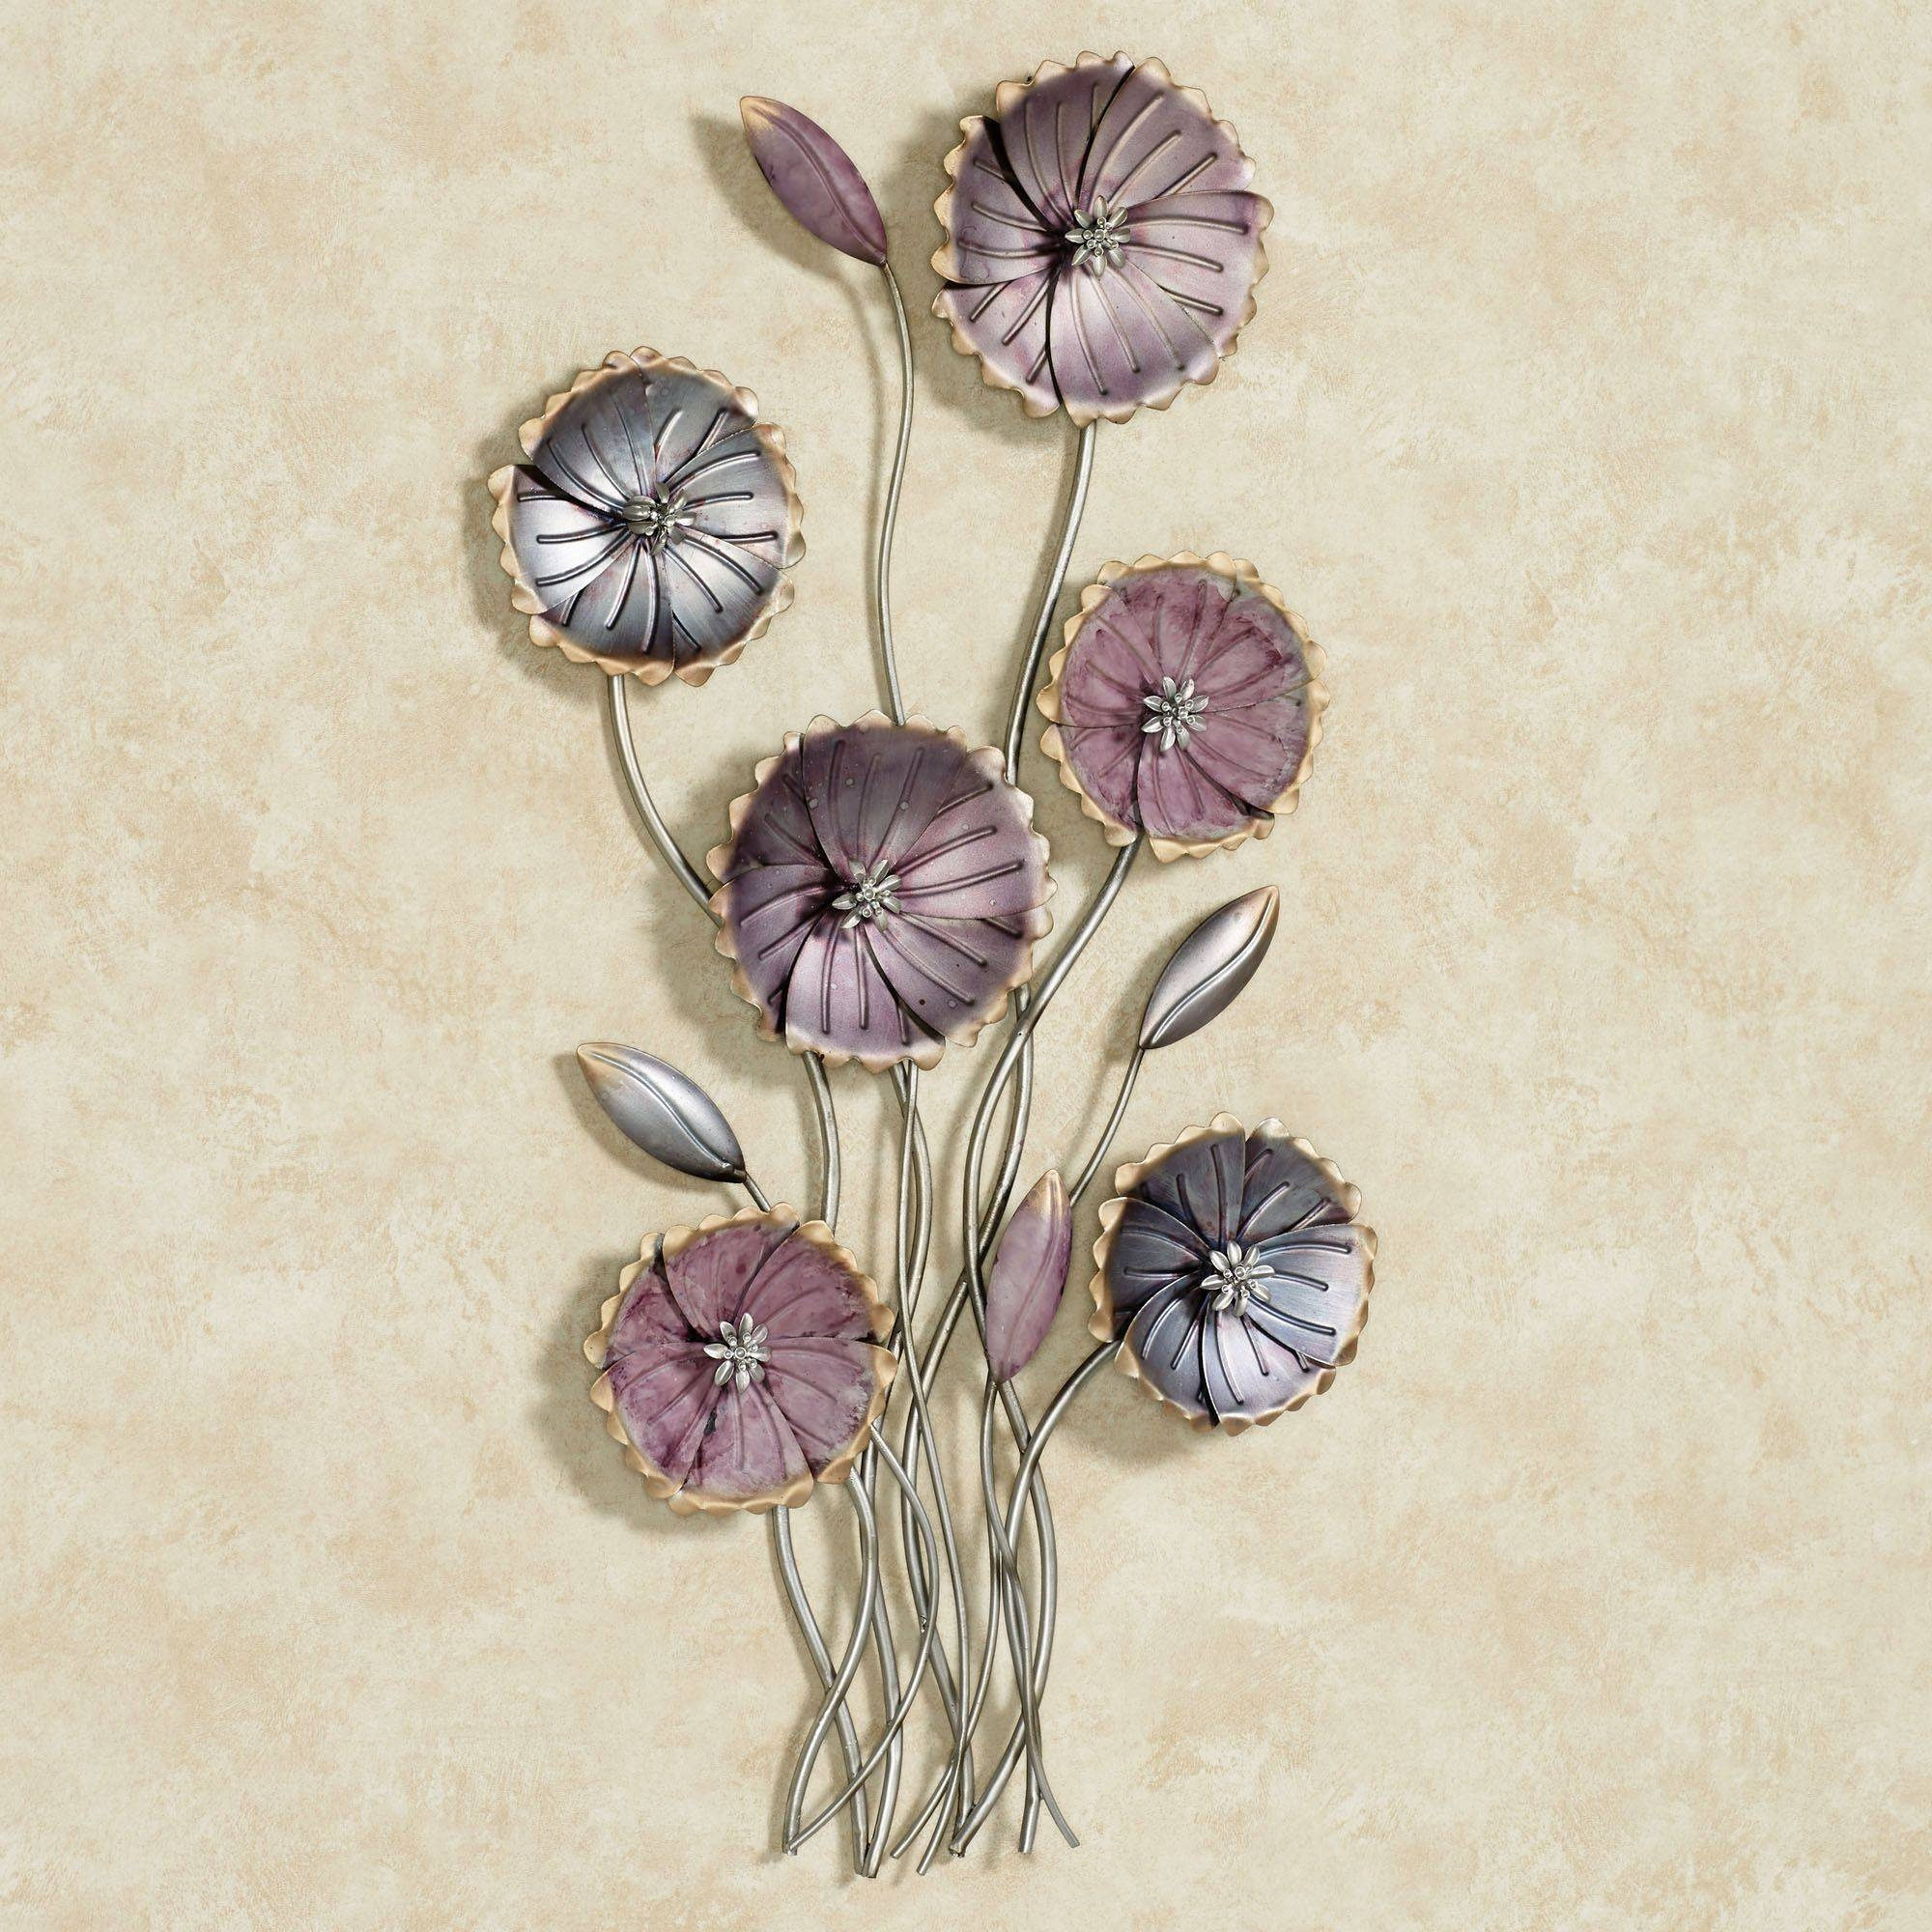 41 Silver Metal Wall Art Flowers, Home Metal Wall Art Wall Decor Within Recent Nature Metal Wall Art (View 1 of 20)